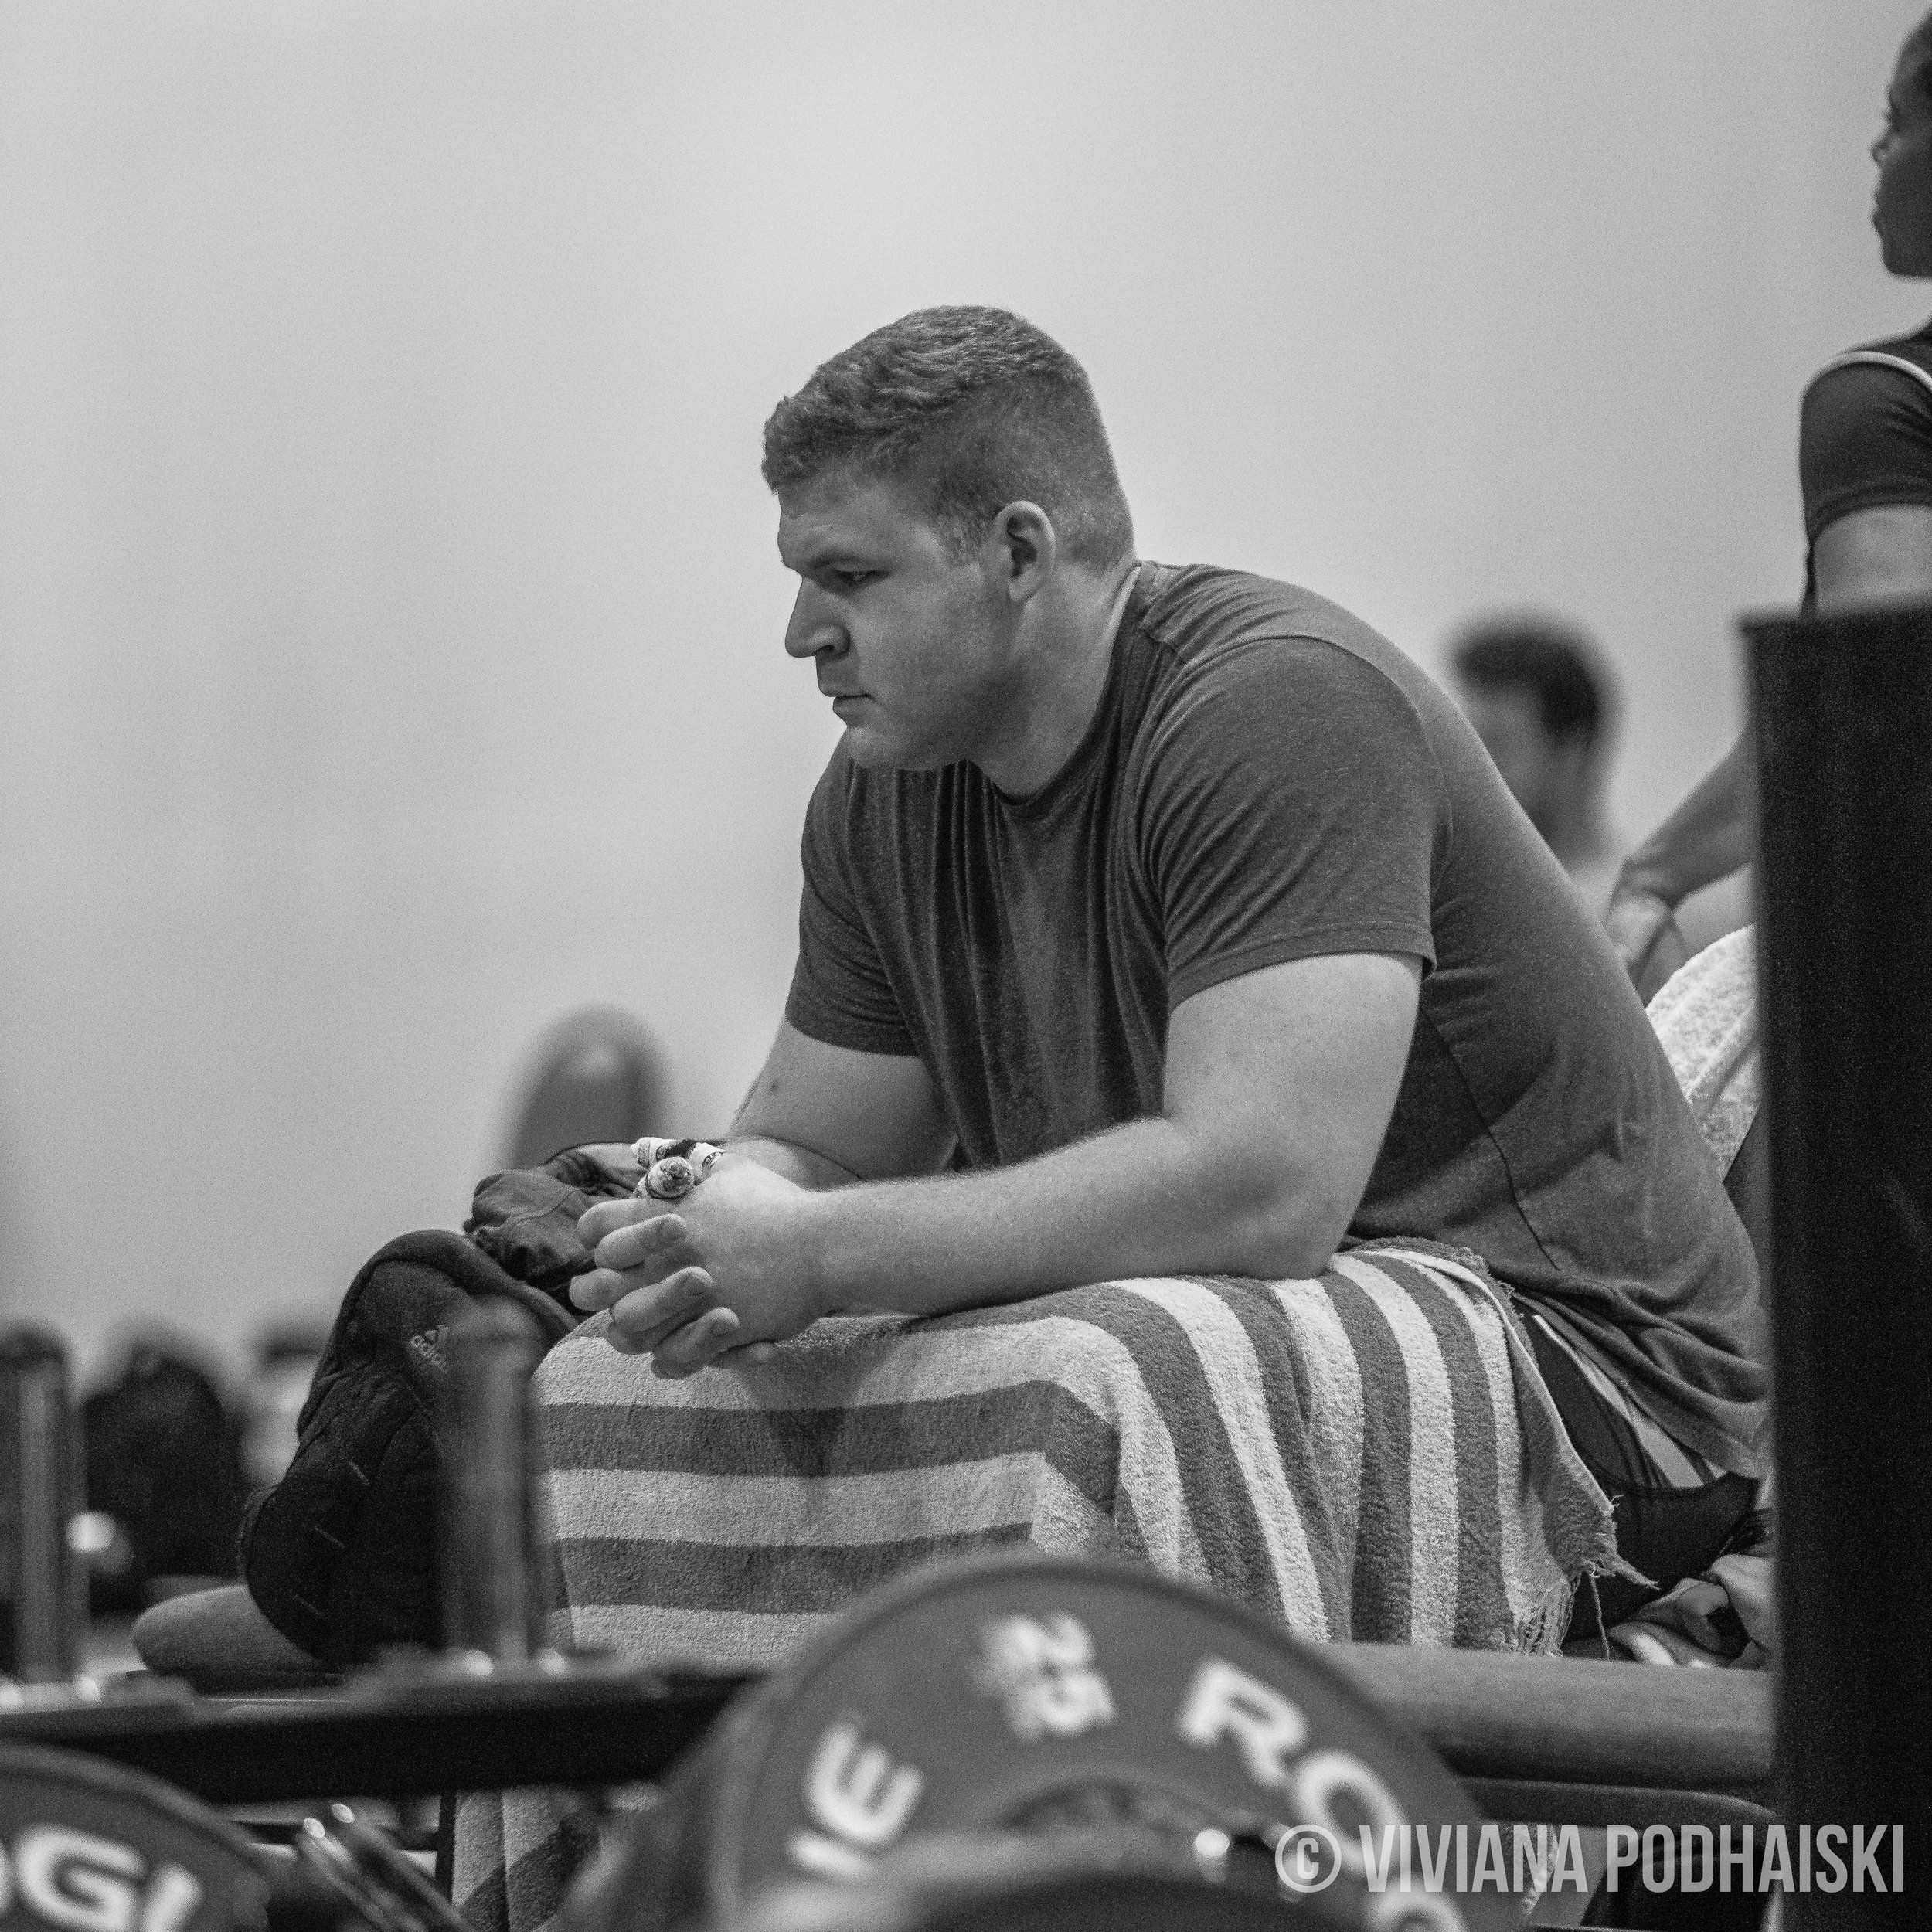 After closely photographing hundreds of weightlifters in the warm up area for the last 2 years, I can see when the brain starts to wander a bit.  The few frames prior to this shot, you can see a change in Witte's face.  Apprehension? Nerves?  Or it wasn't that deep and he was wondering whether or not he left the stove on? We've all been there.